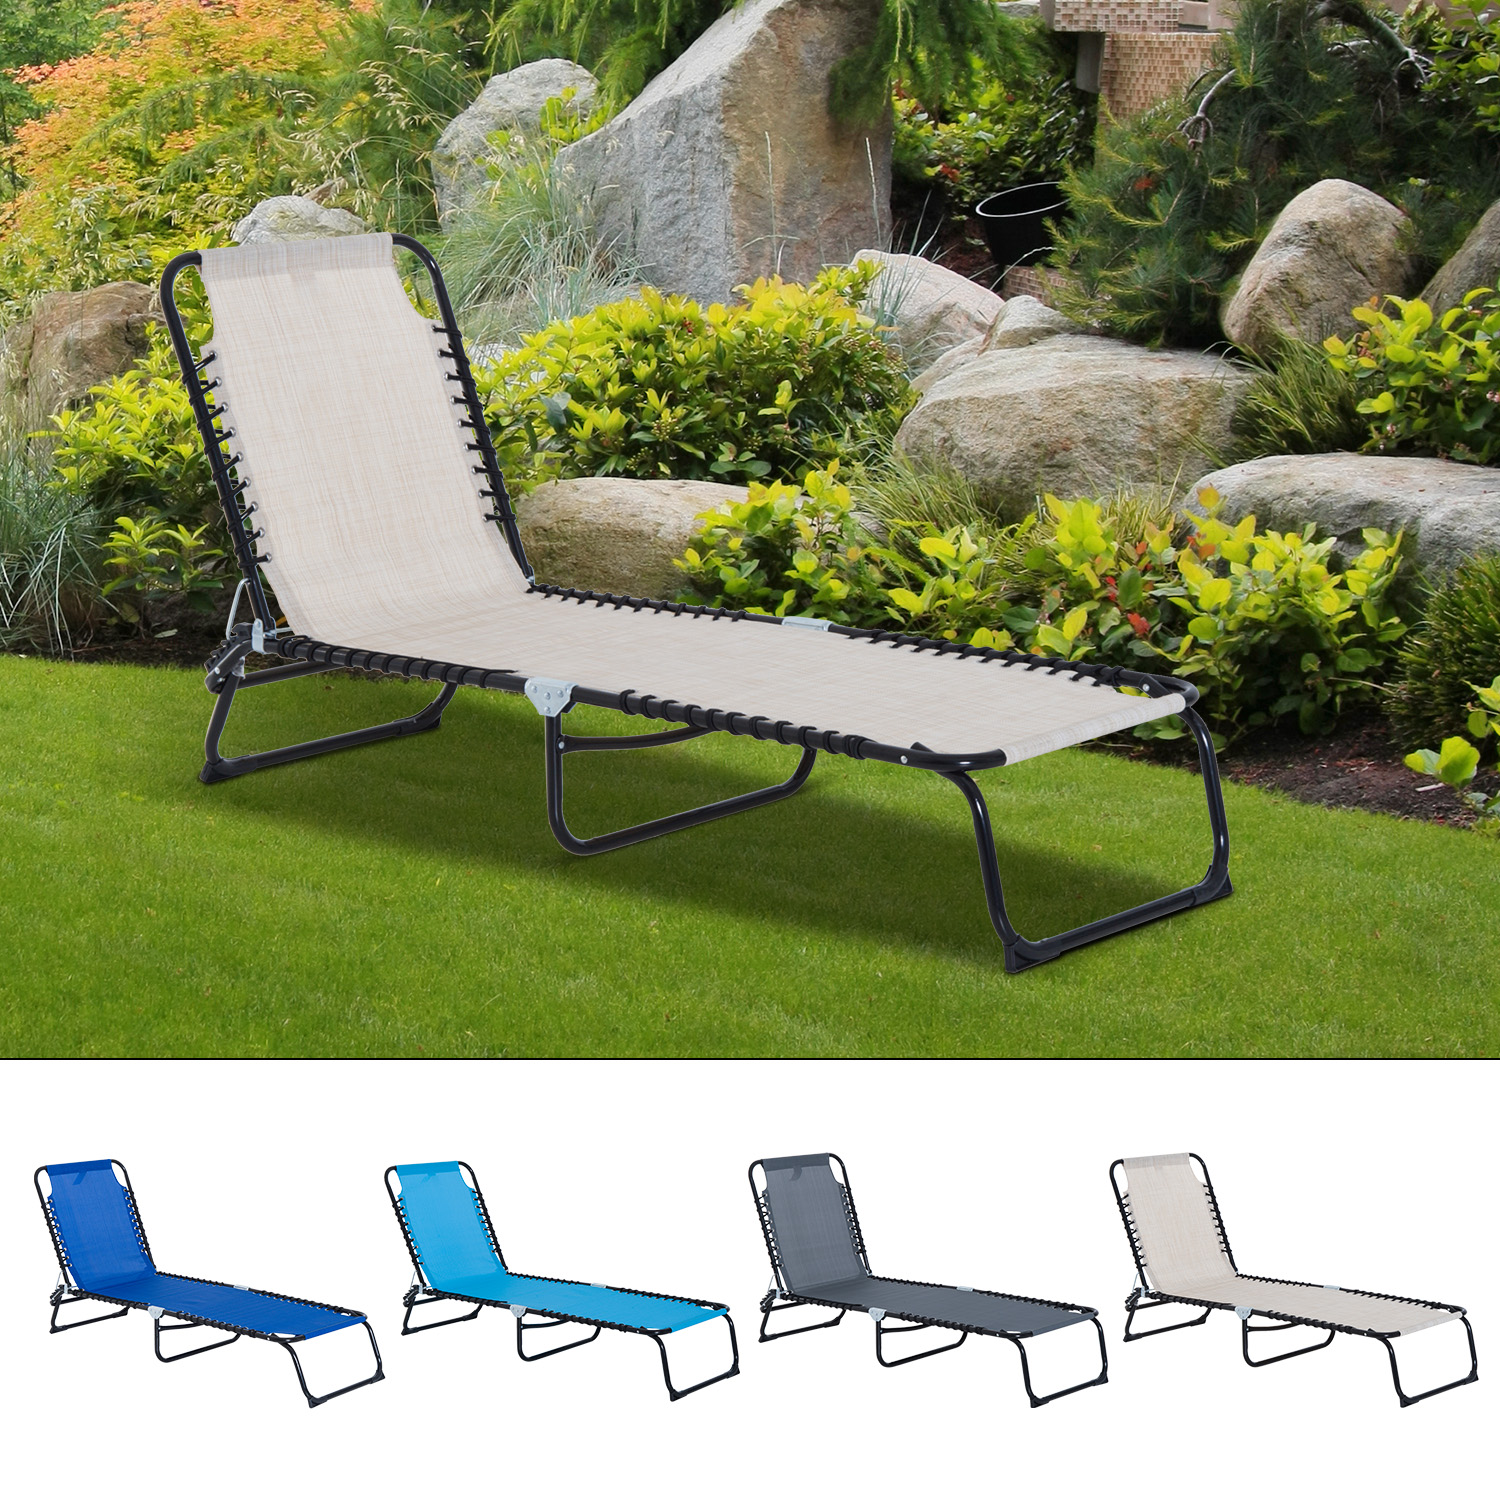 3 position portable reclining beach chaise lounge adjustable sleeping bed